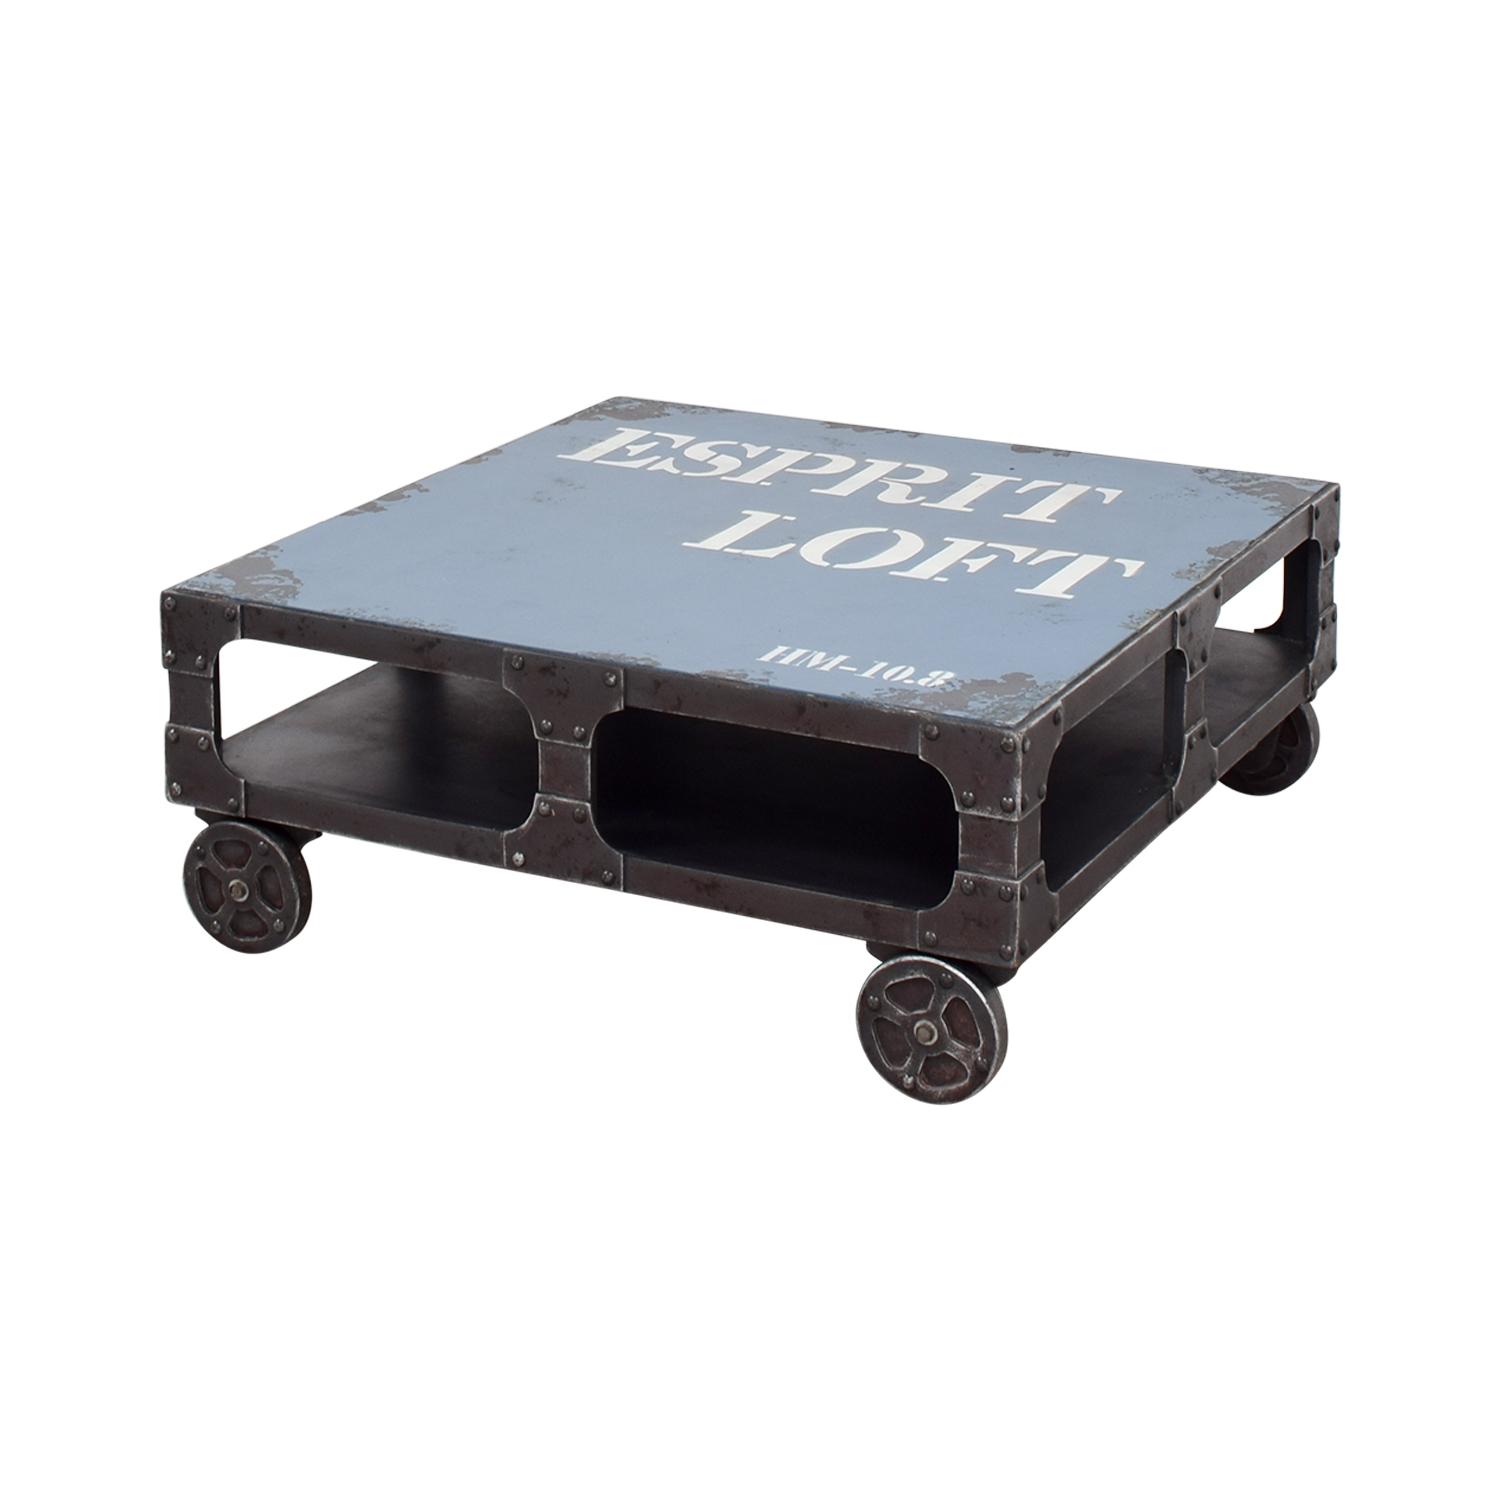 Moes Moes Home Collection Loft Coffee Table price